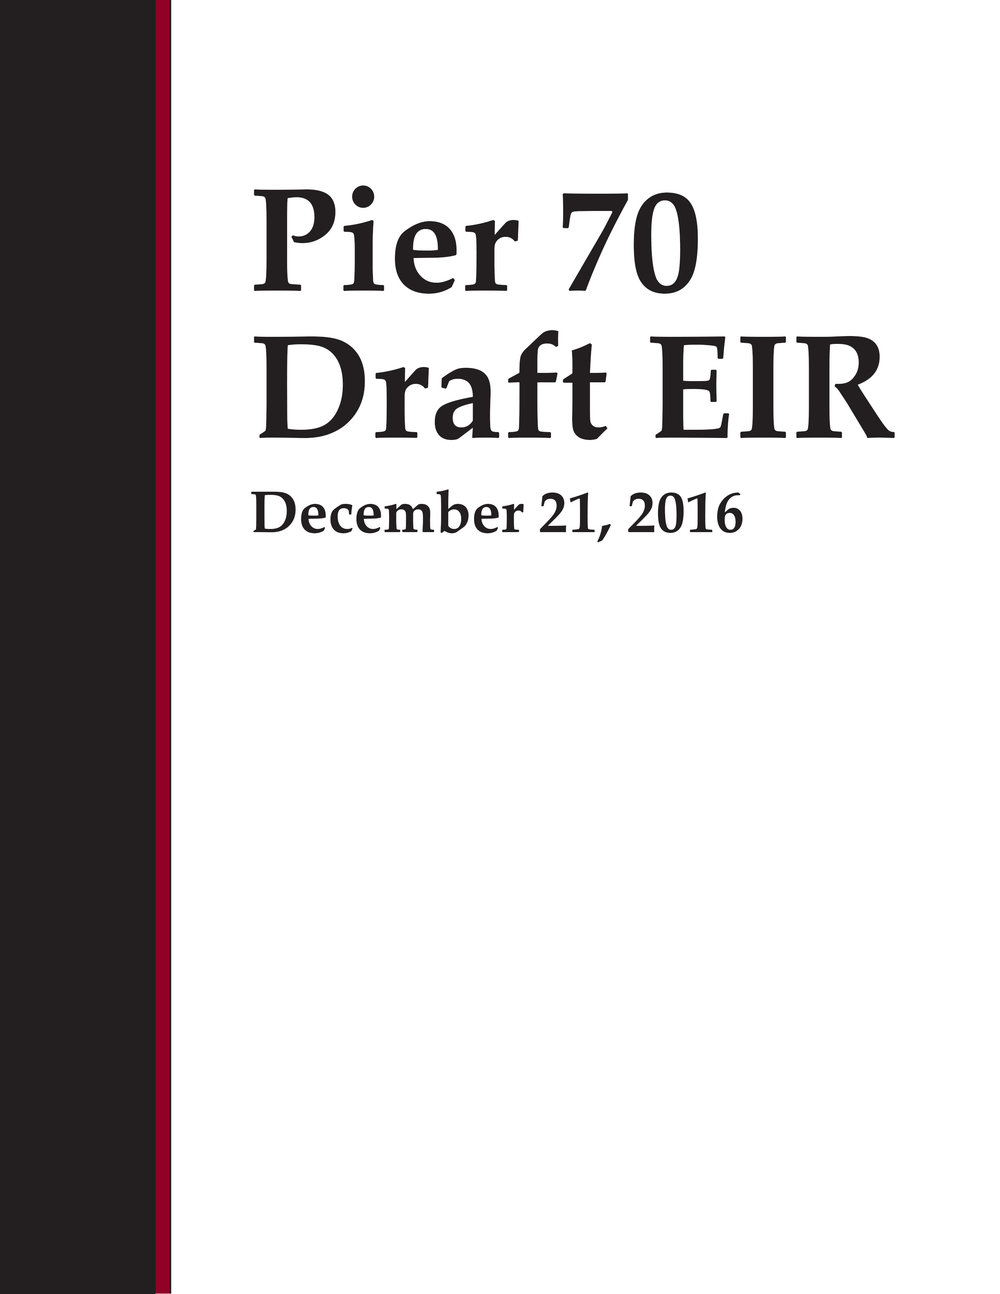 Draft DEIR Cover.jpg